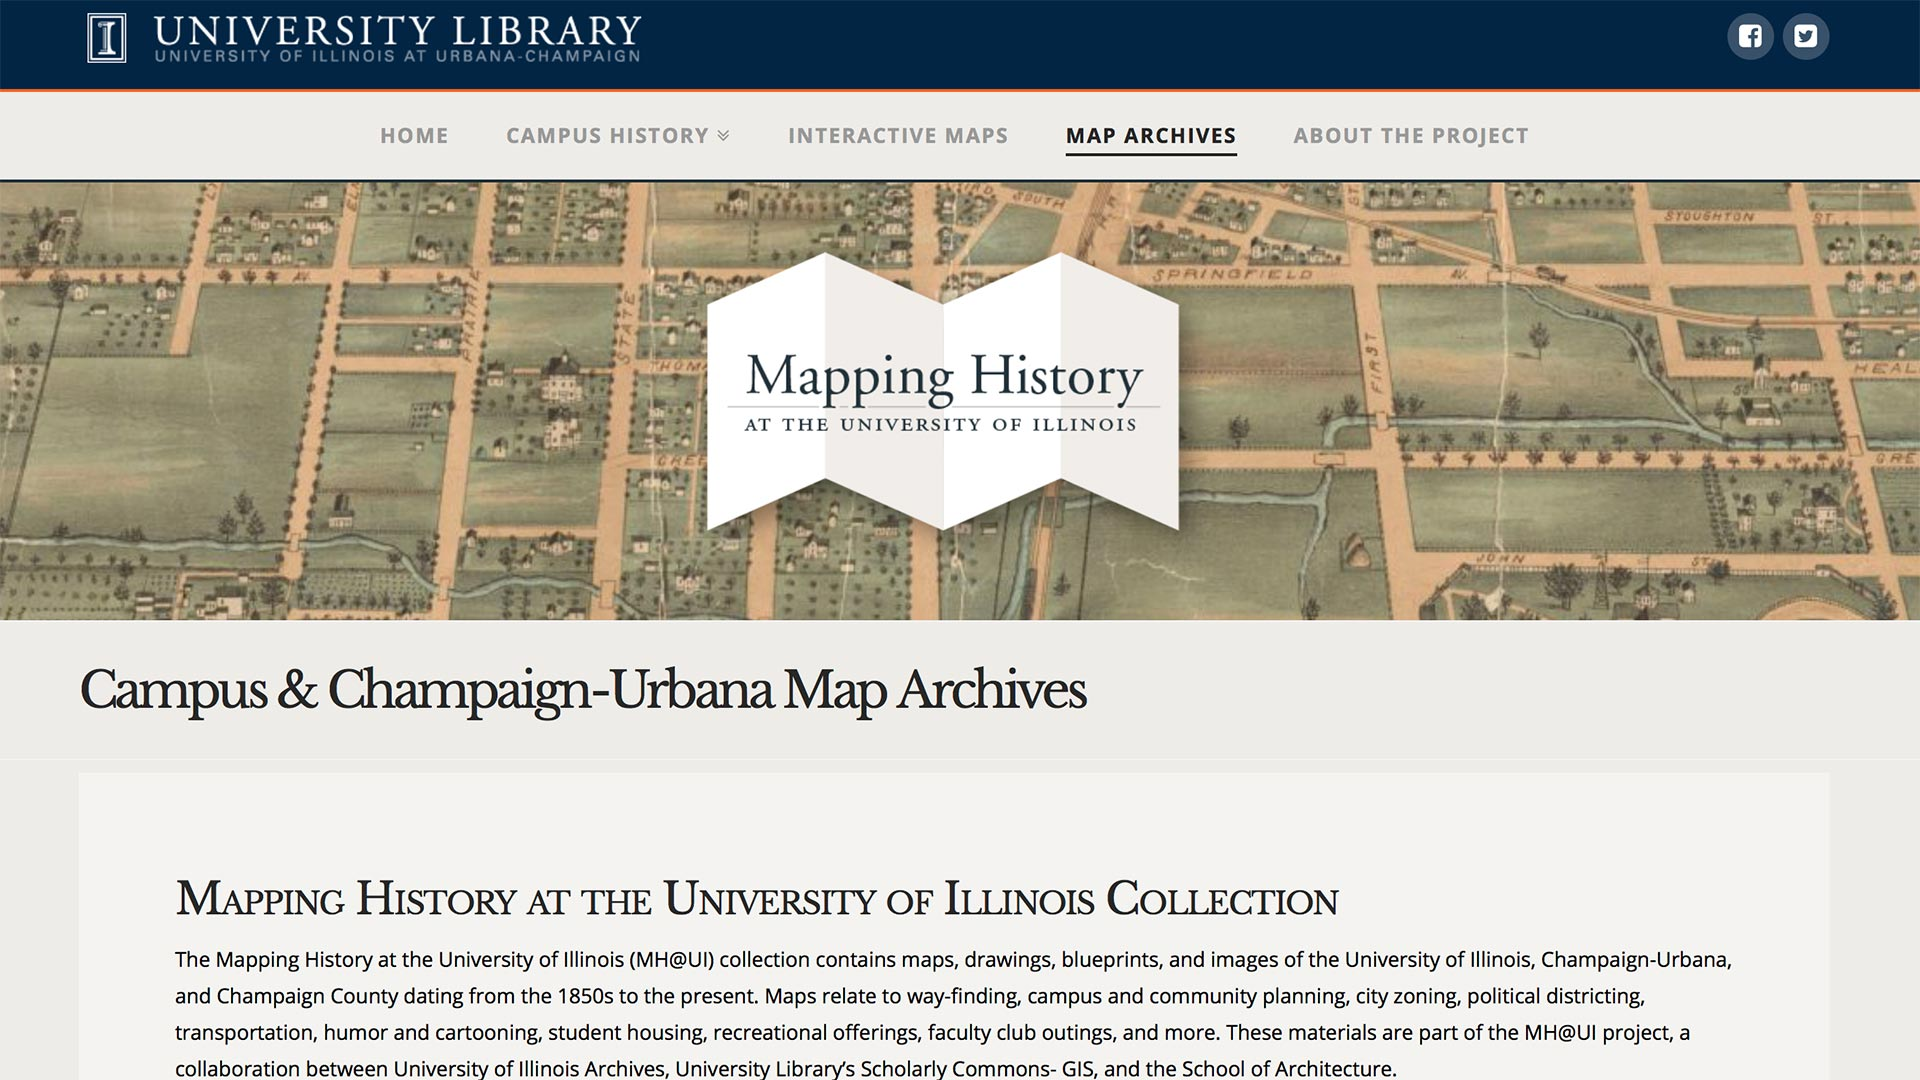 screenshot of the main Mapping History / Campus & C-U Map Archives screen